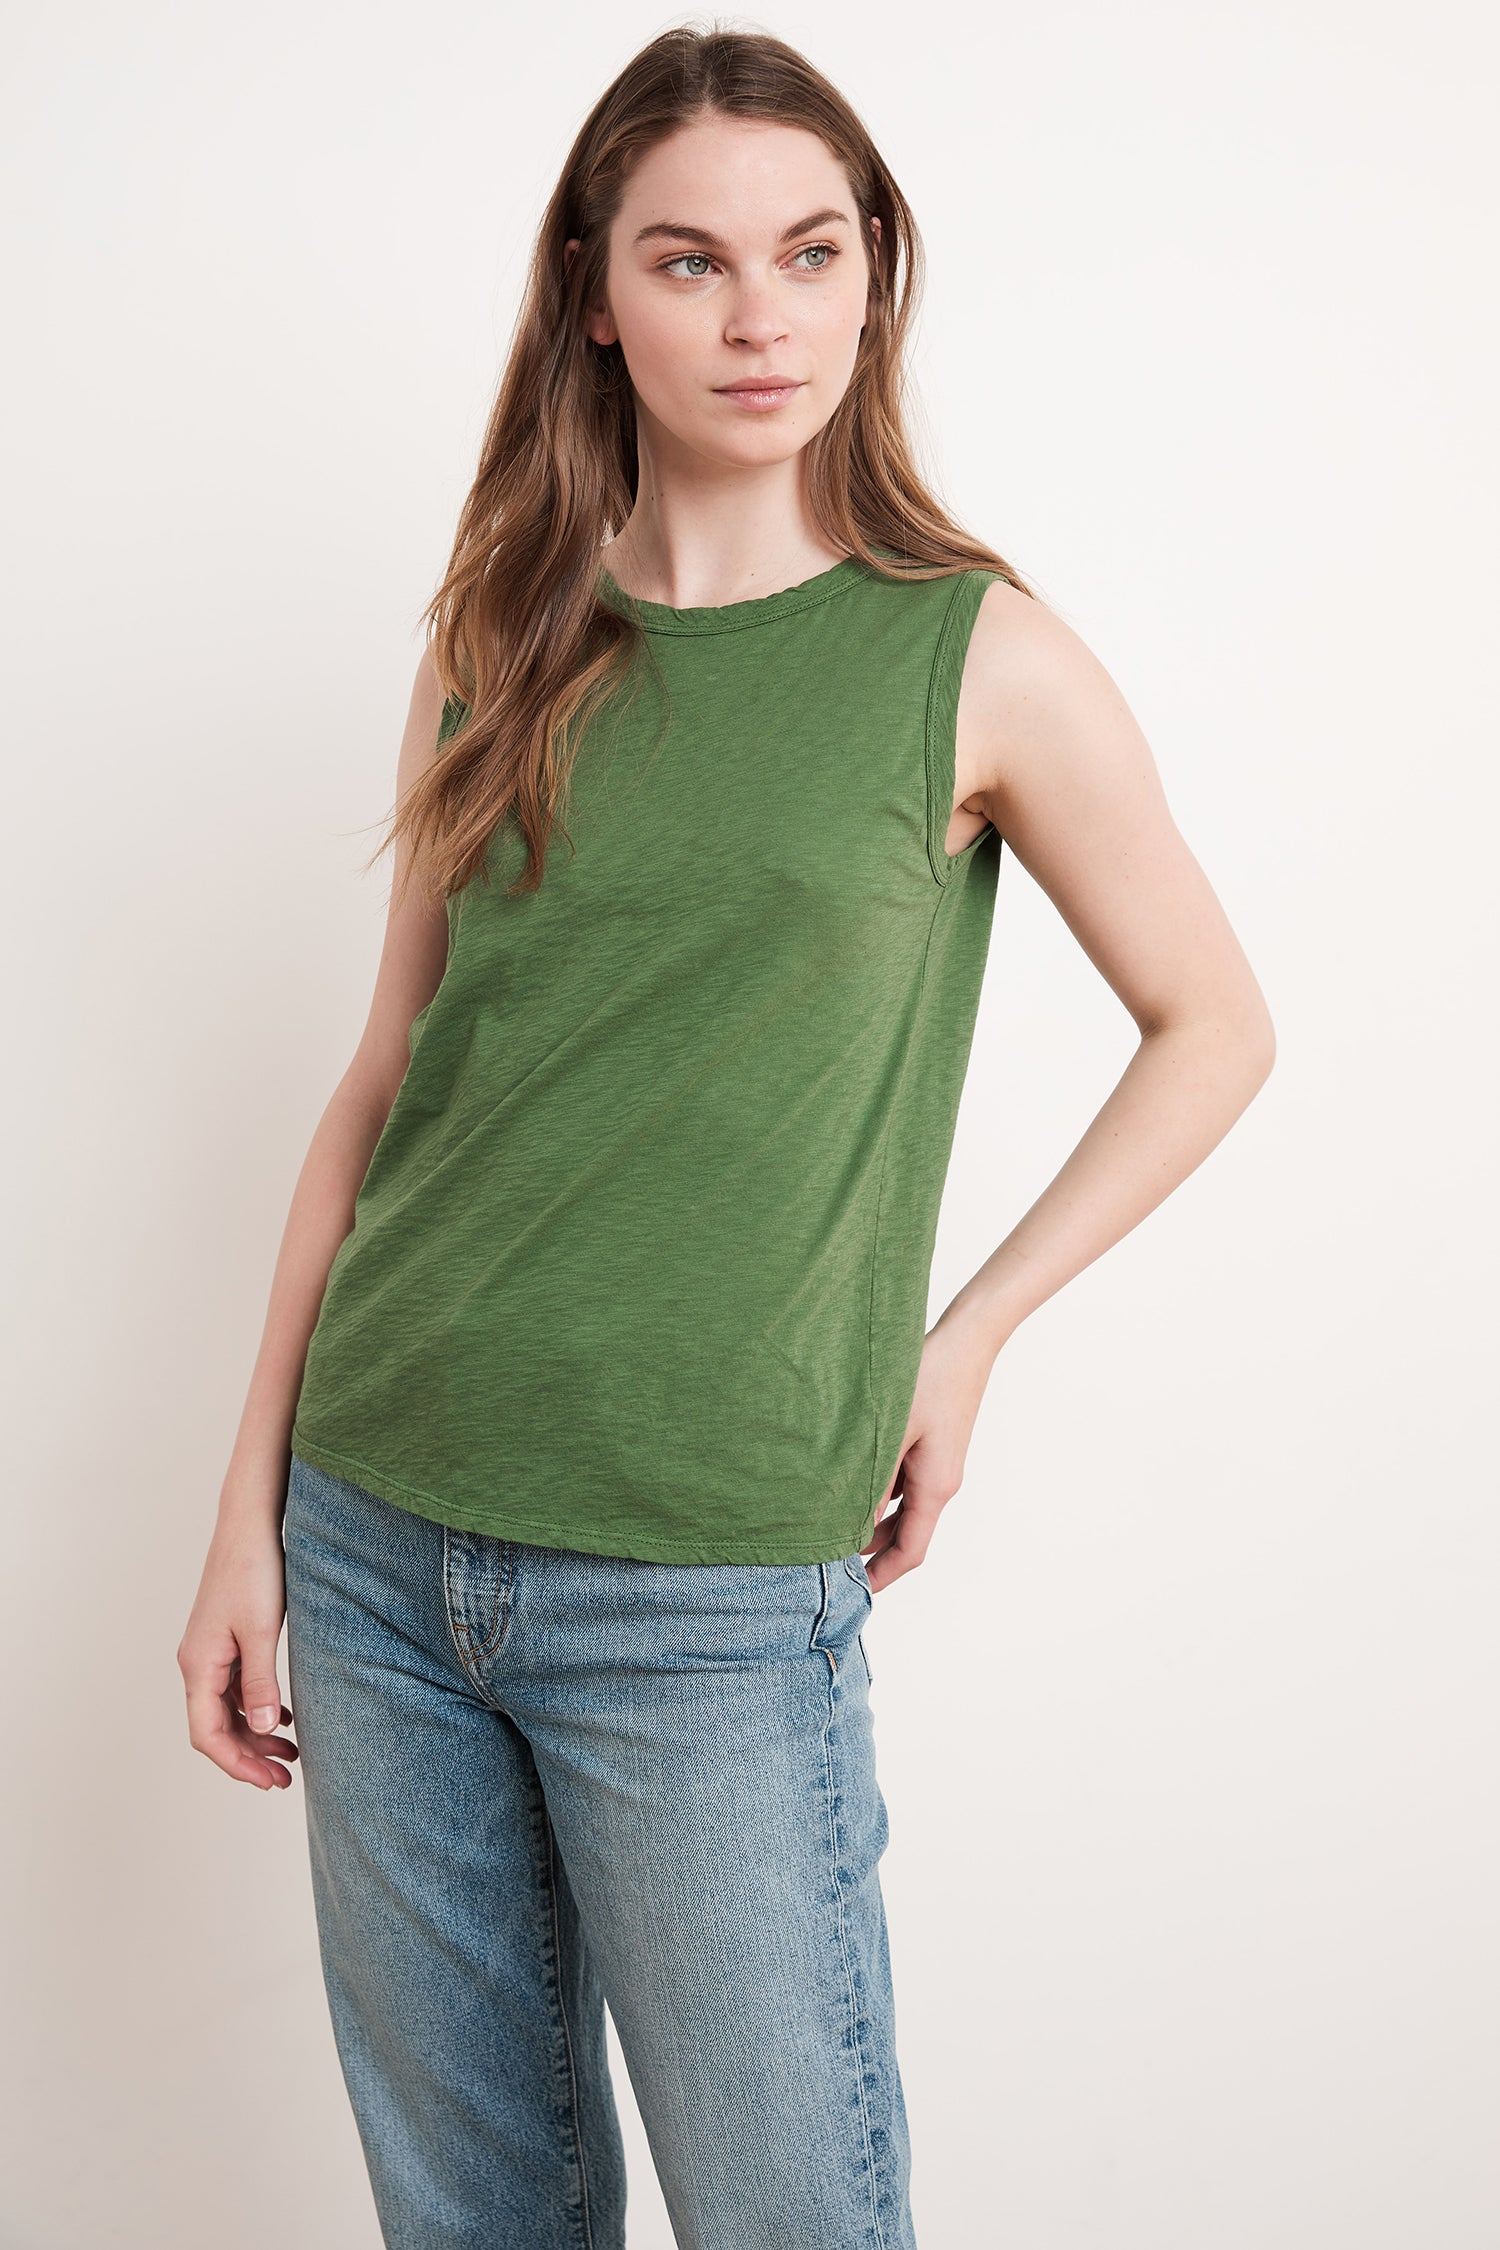 TAURUS COTTON SLUB TOP IN IVY